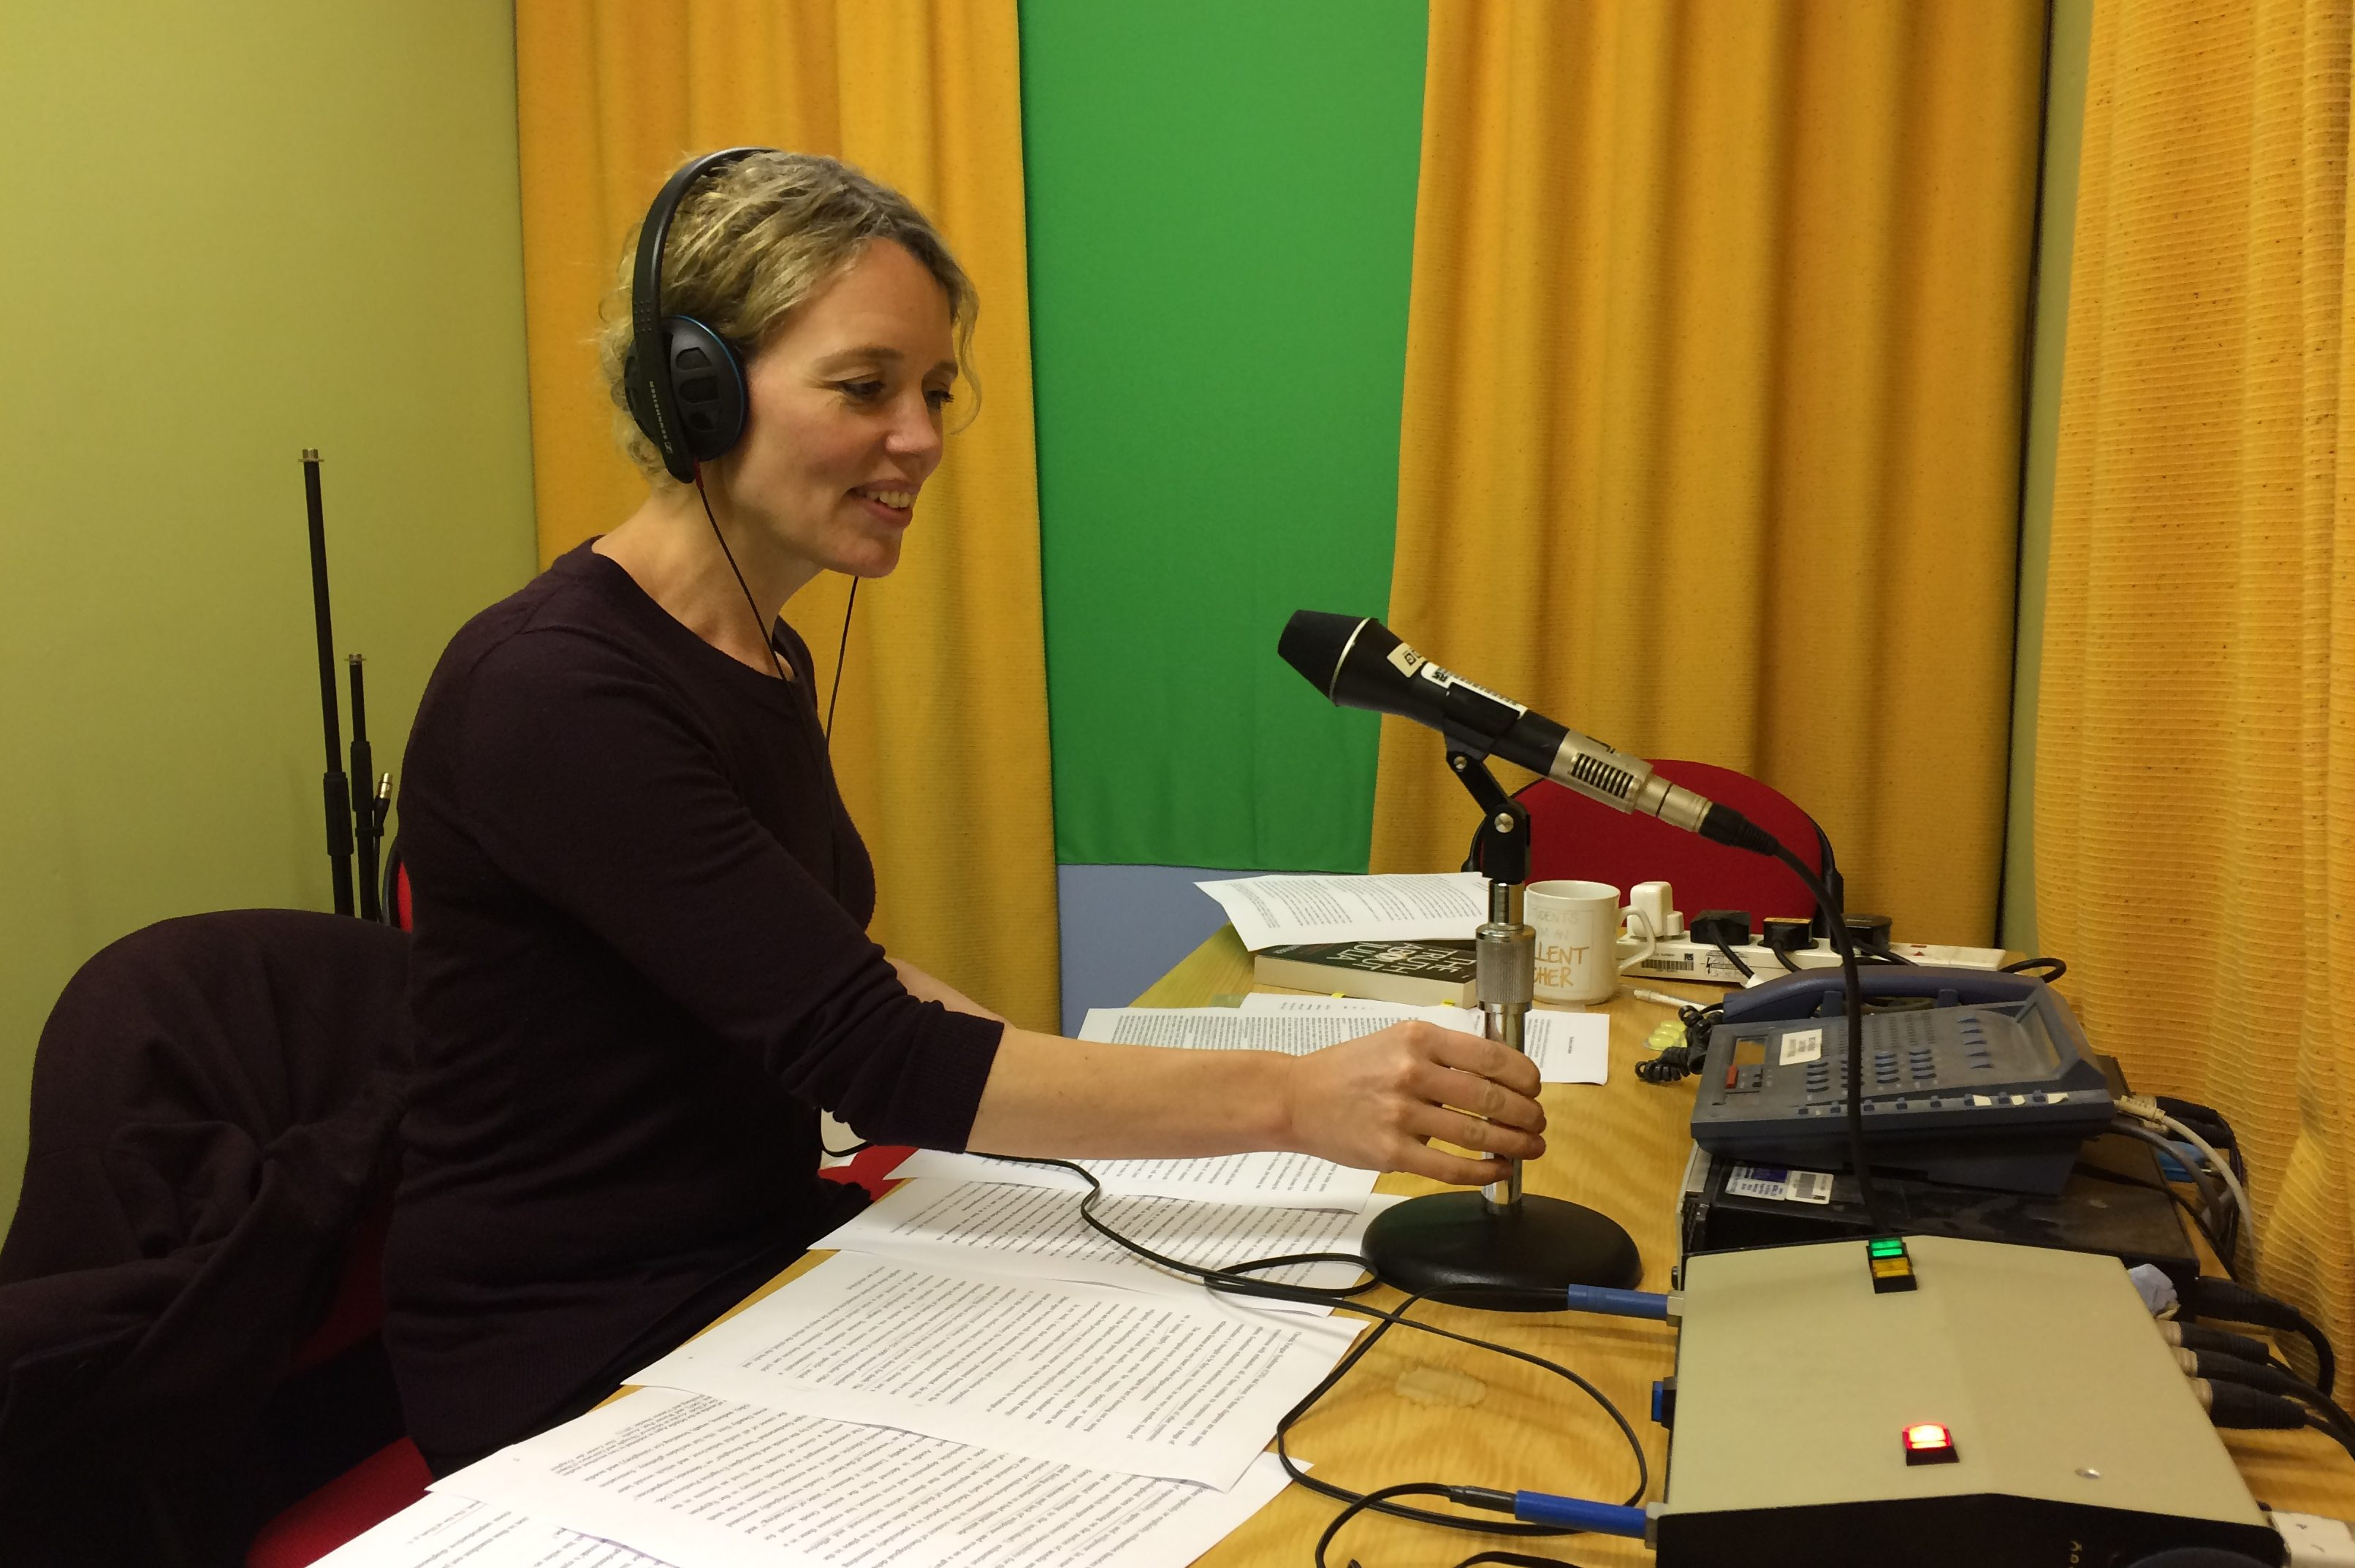 Anna Schaffner interviewed on radio